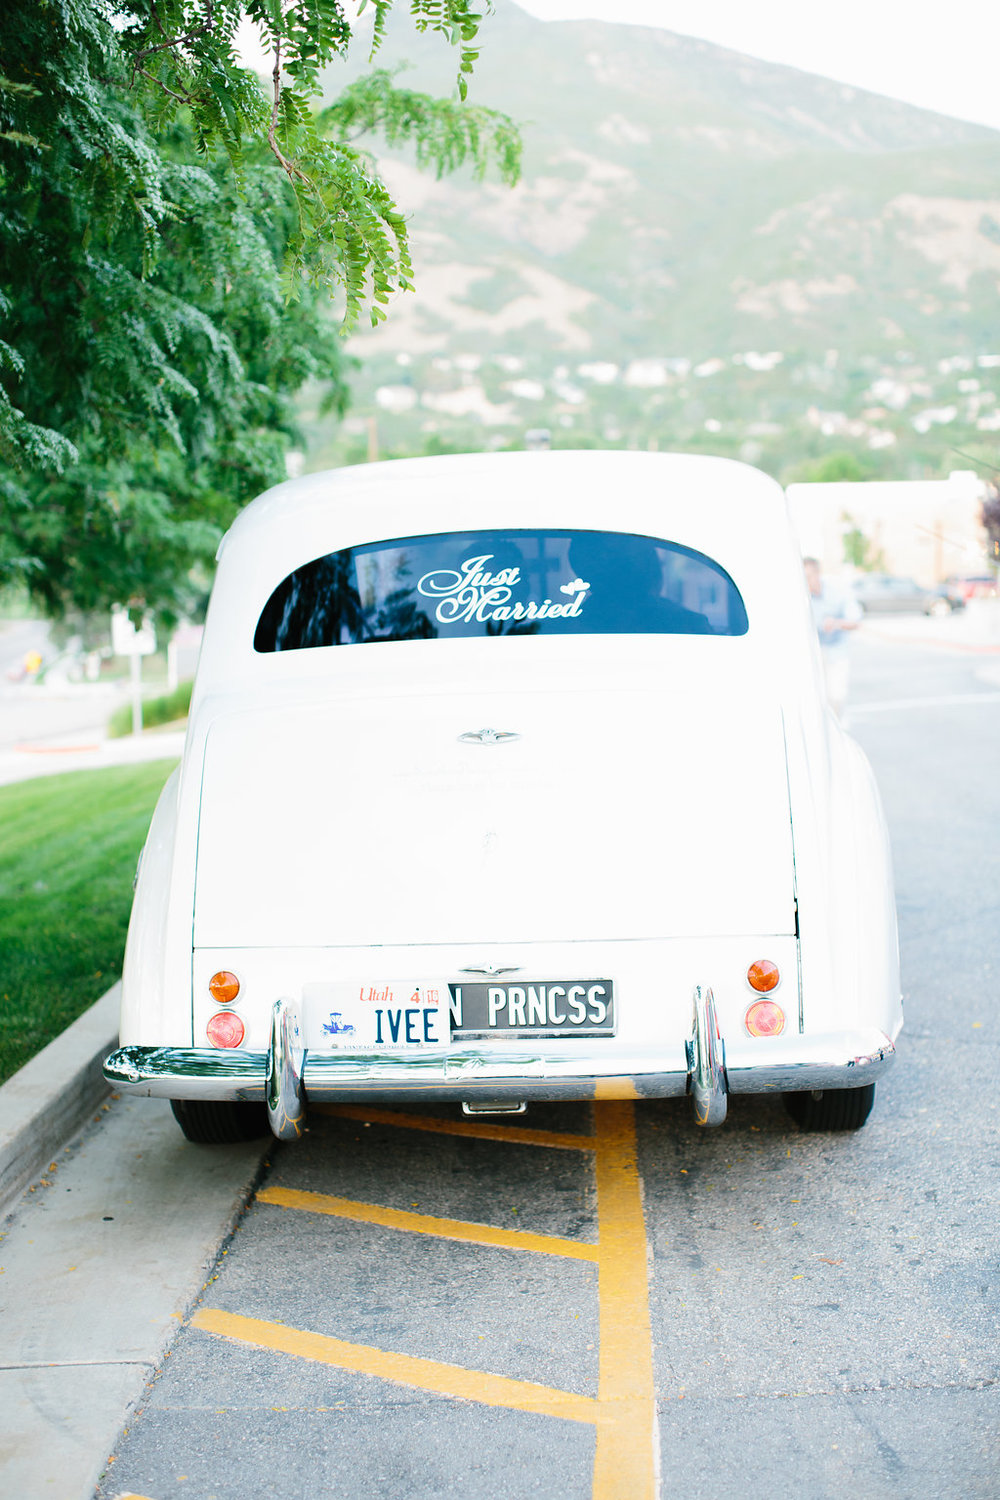 Weber State Wedding | LDS Wedding | Ogden Temple Wedding | Michelle Leo Events | Utah Event Planner and Designer | BreAnne Weston Photography